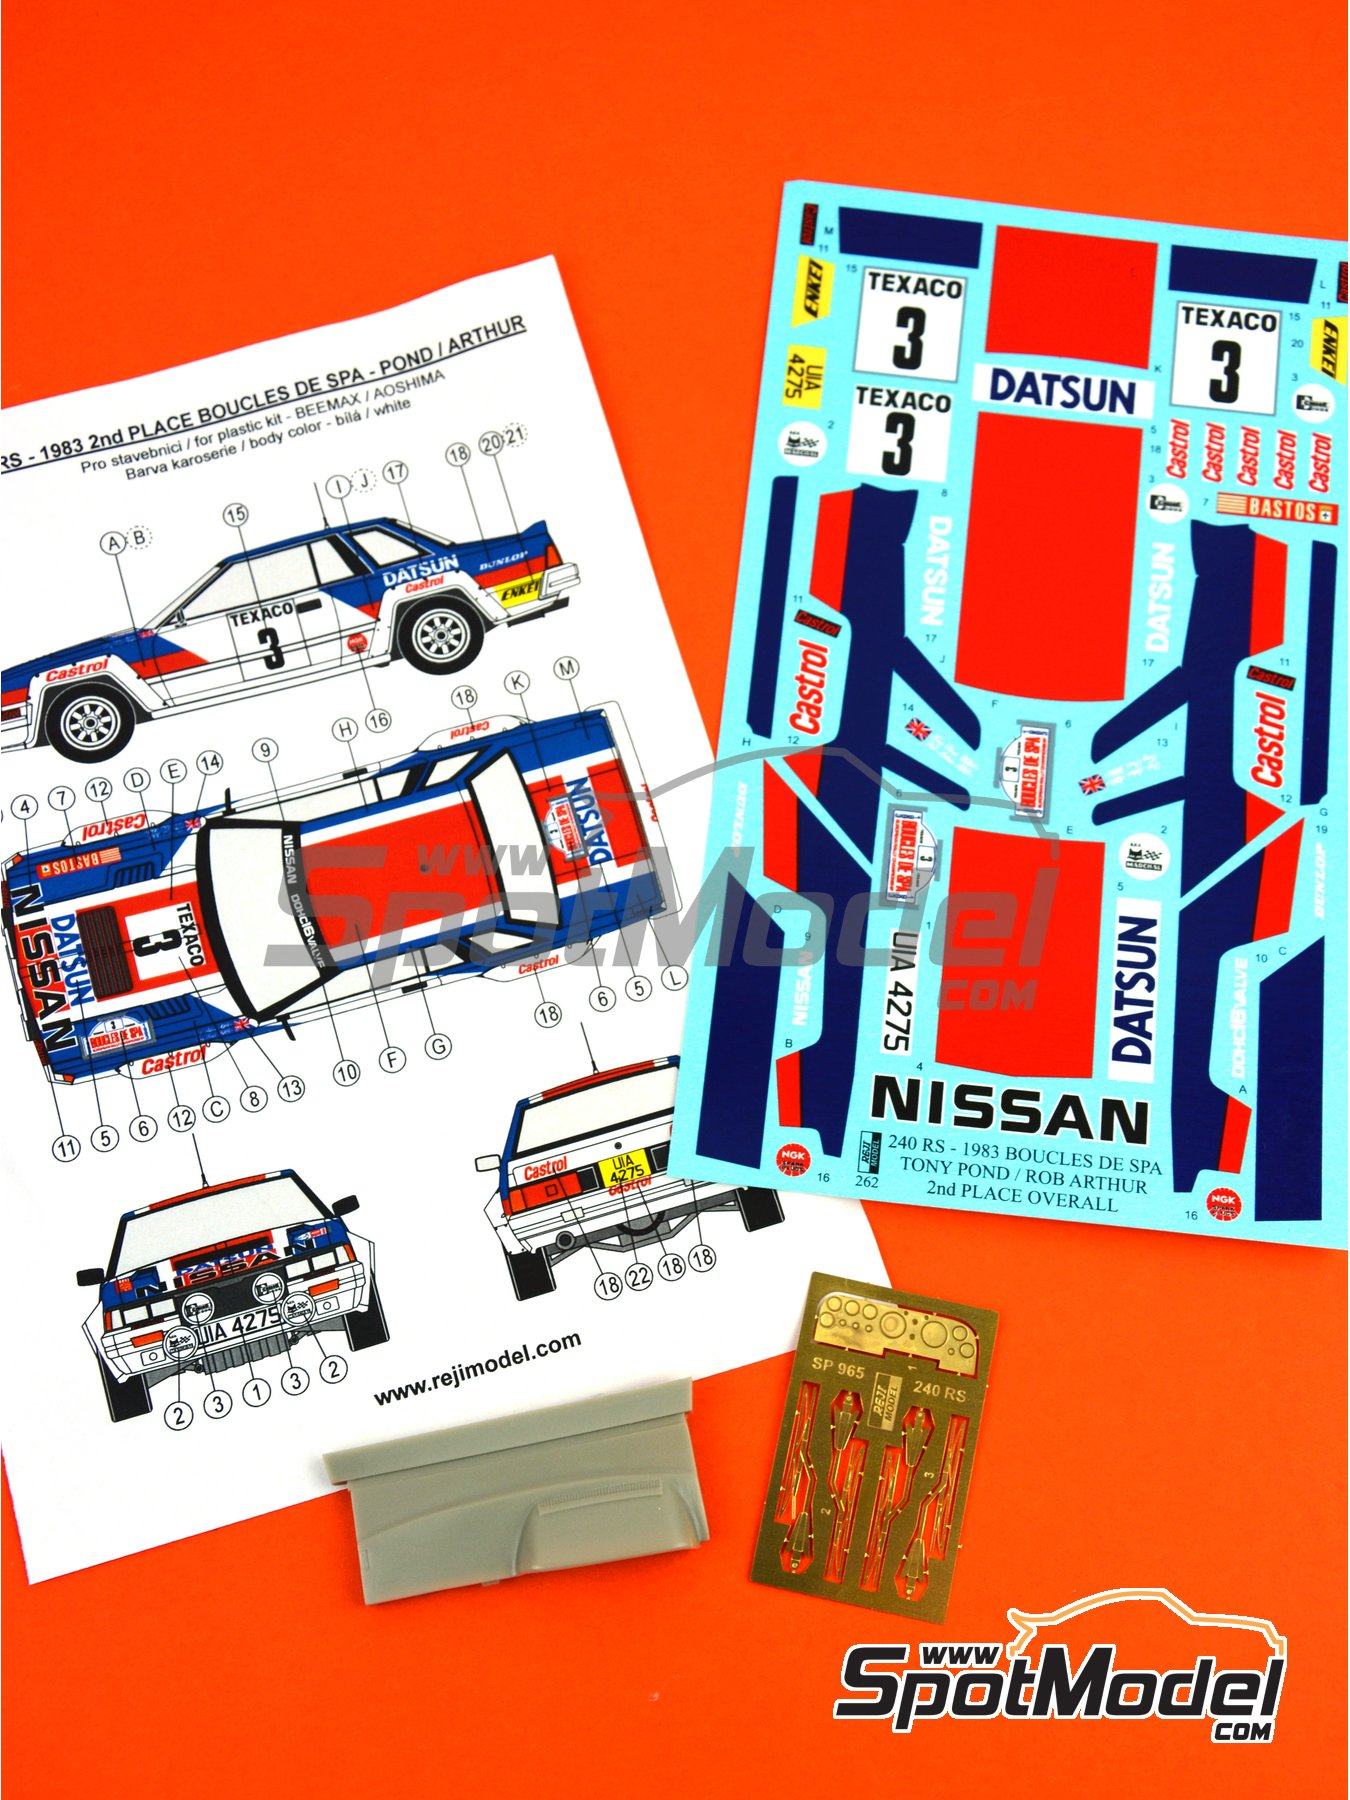 Nissan 240RS Castrol - Boucles de SPA 1983 | Decoración en escala 1/24 fabricado por Reji Model (ref. REJI-262) image